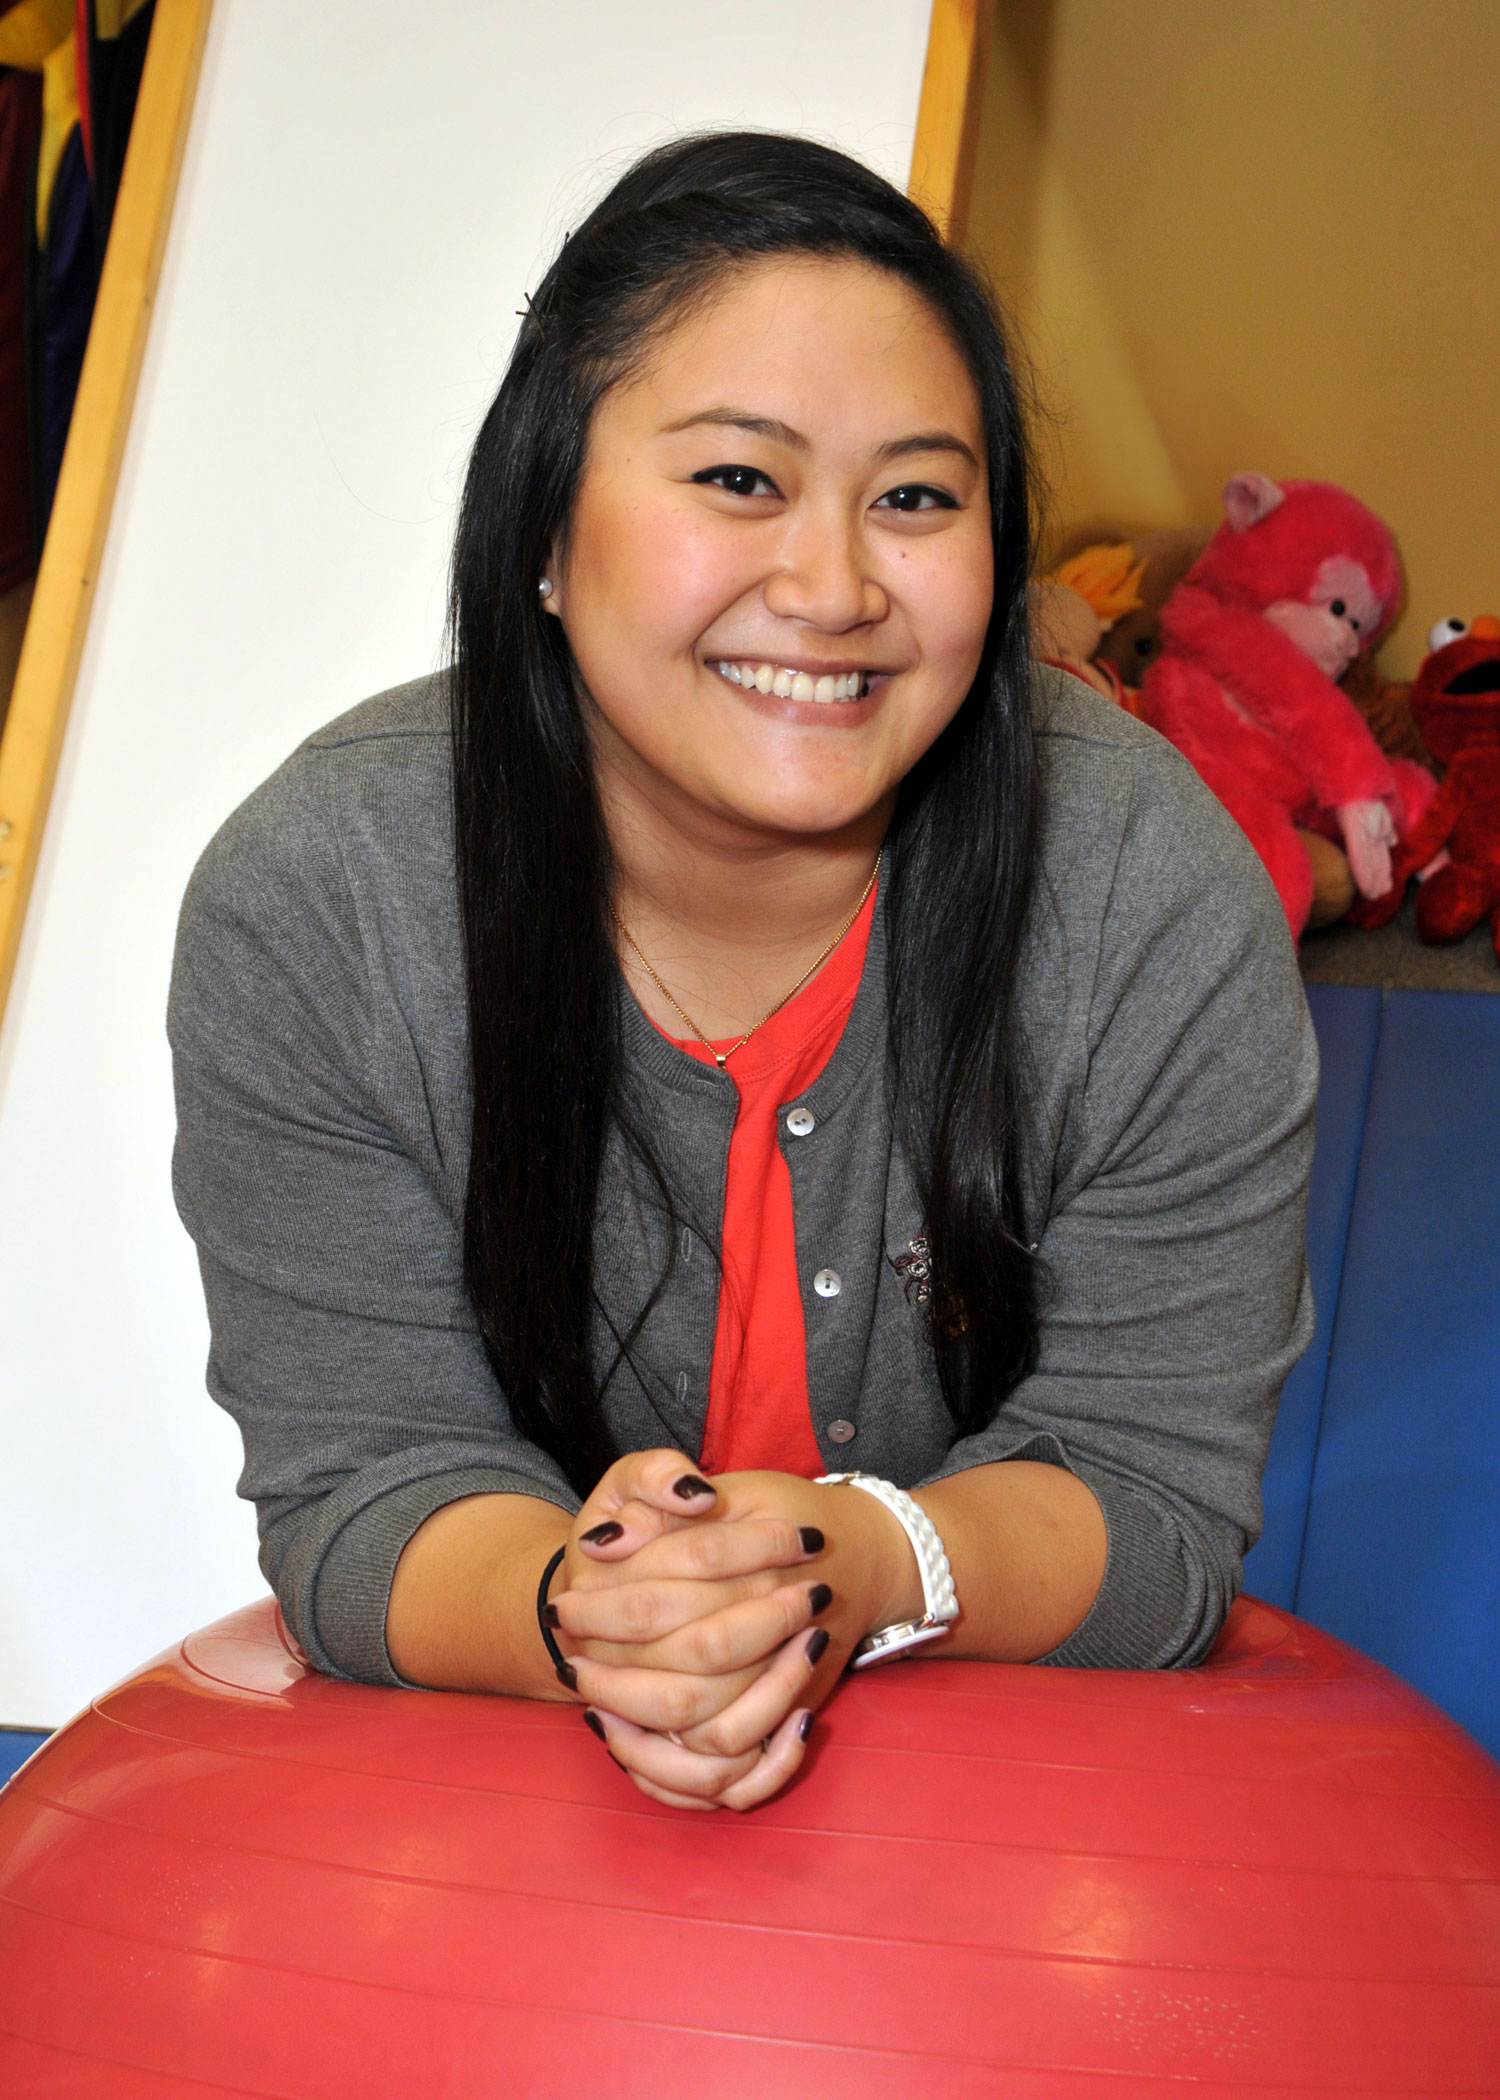 Thao Witbeck, MS, CCC-SLP/L - Thao was born and raised in the Lake County area. She has been married to her college sweetheart, Cameron, for 3 years. In her spare time, Thao loves to spend time with her family, friends, and her dog, Loki. When she can, she loves to travel, especially to Marquette in the Upper Peninsula of Michigan, where she attended college, or to Vietnam to visit her Dad's family. She enjoys singing for fun and has sung the national anthem in front of a crowd of 900 people! Thao likes to watch reality competition shows and anything 'Gordon Ramsey.'For her undergraduate degree, she ventured to Michigan, where she received her bachelor's degree from Northern Michigan University in Speech, Language and Hearing Sciences. She received her master's degree in Communication Disorders from Minot State University, in North Dakota. Thao started at Pediatric Interactions when she was a graduate student intern and was happy to join the PI team after that. She has experience working with children in Early Intervention, Autism, Behavioral Management, Receptive/Expressive Language delays, Alternative/Augmentative Communication (AAC), and more. She also enjoys working with bilingual families. In the past year, she received training for the Pragmatic Organisation Dynamic Display (PODD), which is a low-tech communication device. She has been excited to share this information with others at PI.